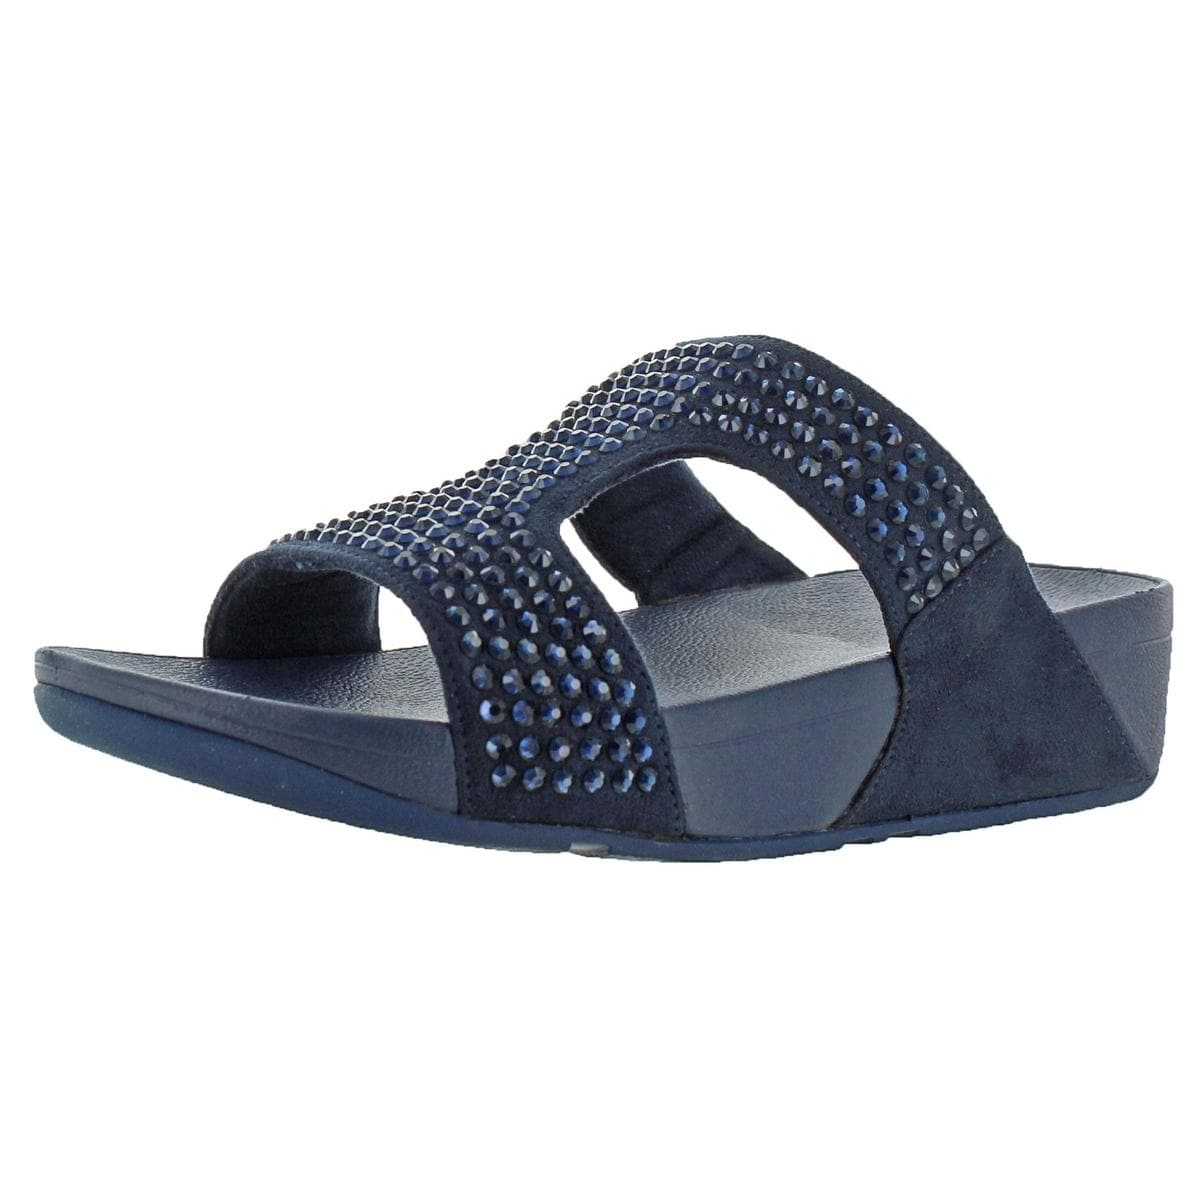 86077f76b99fb0 Shop Fitflop Womens Glitzie Slide Slide Sandals Microfiber Slip on - 7  Medium (B